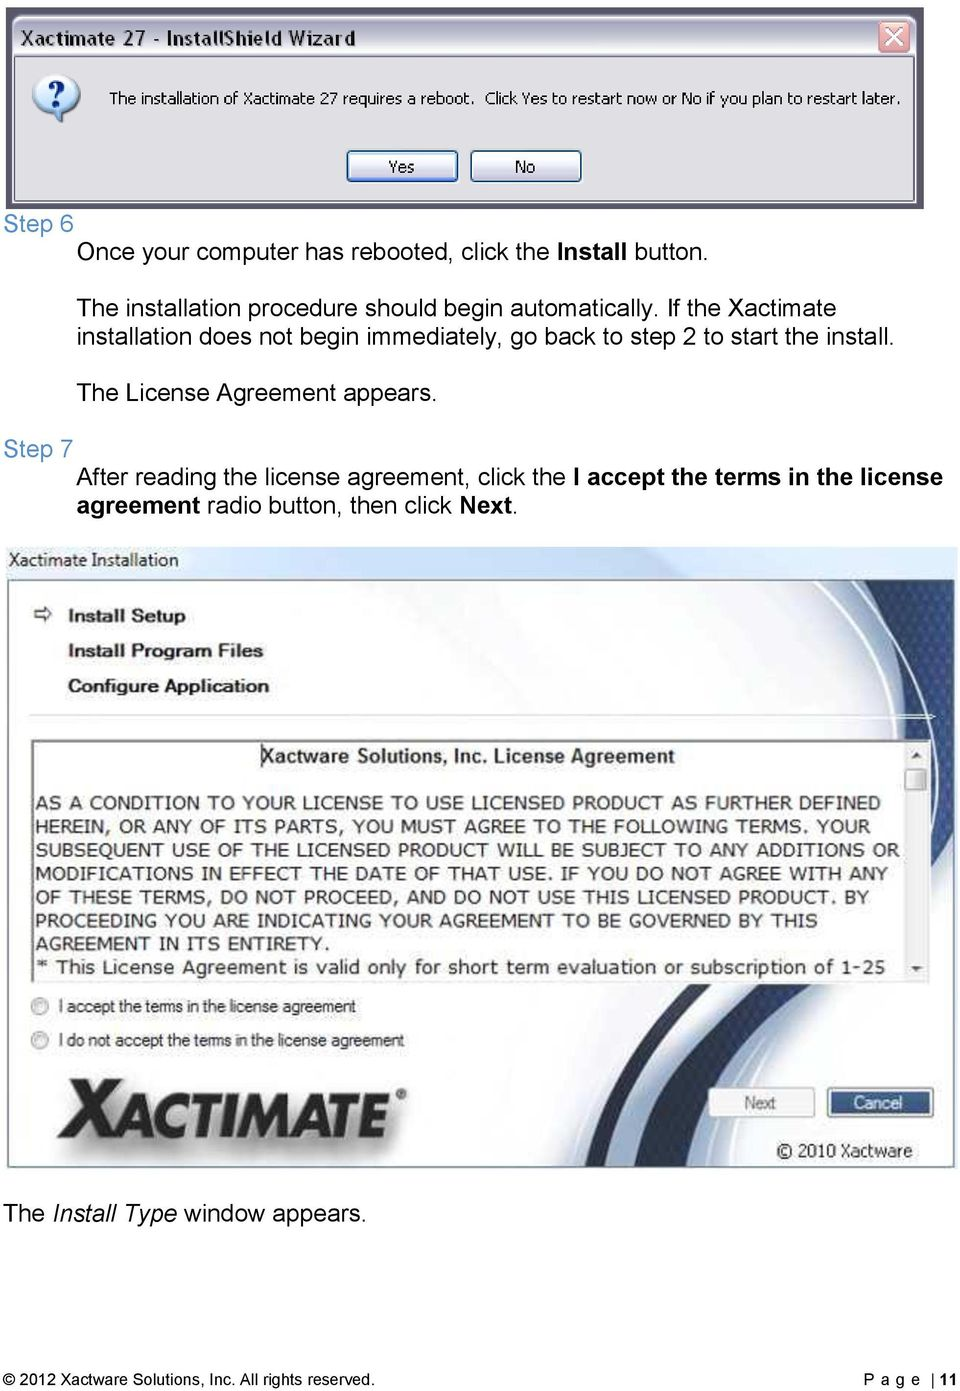 If the Xactimate installation does not begin immediately, go back to step 2 to start the install.